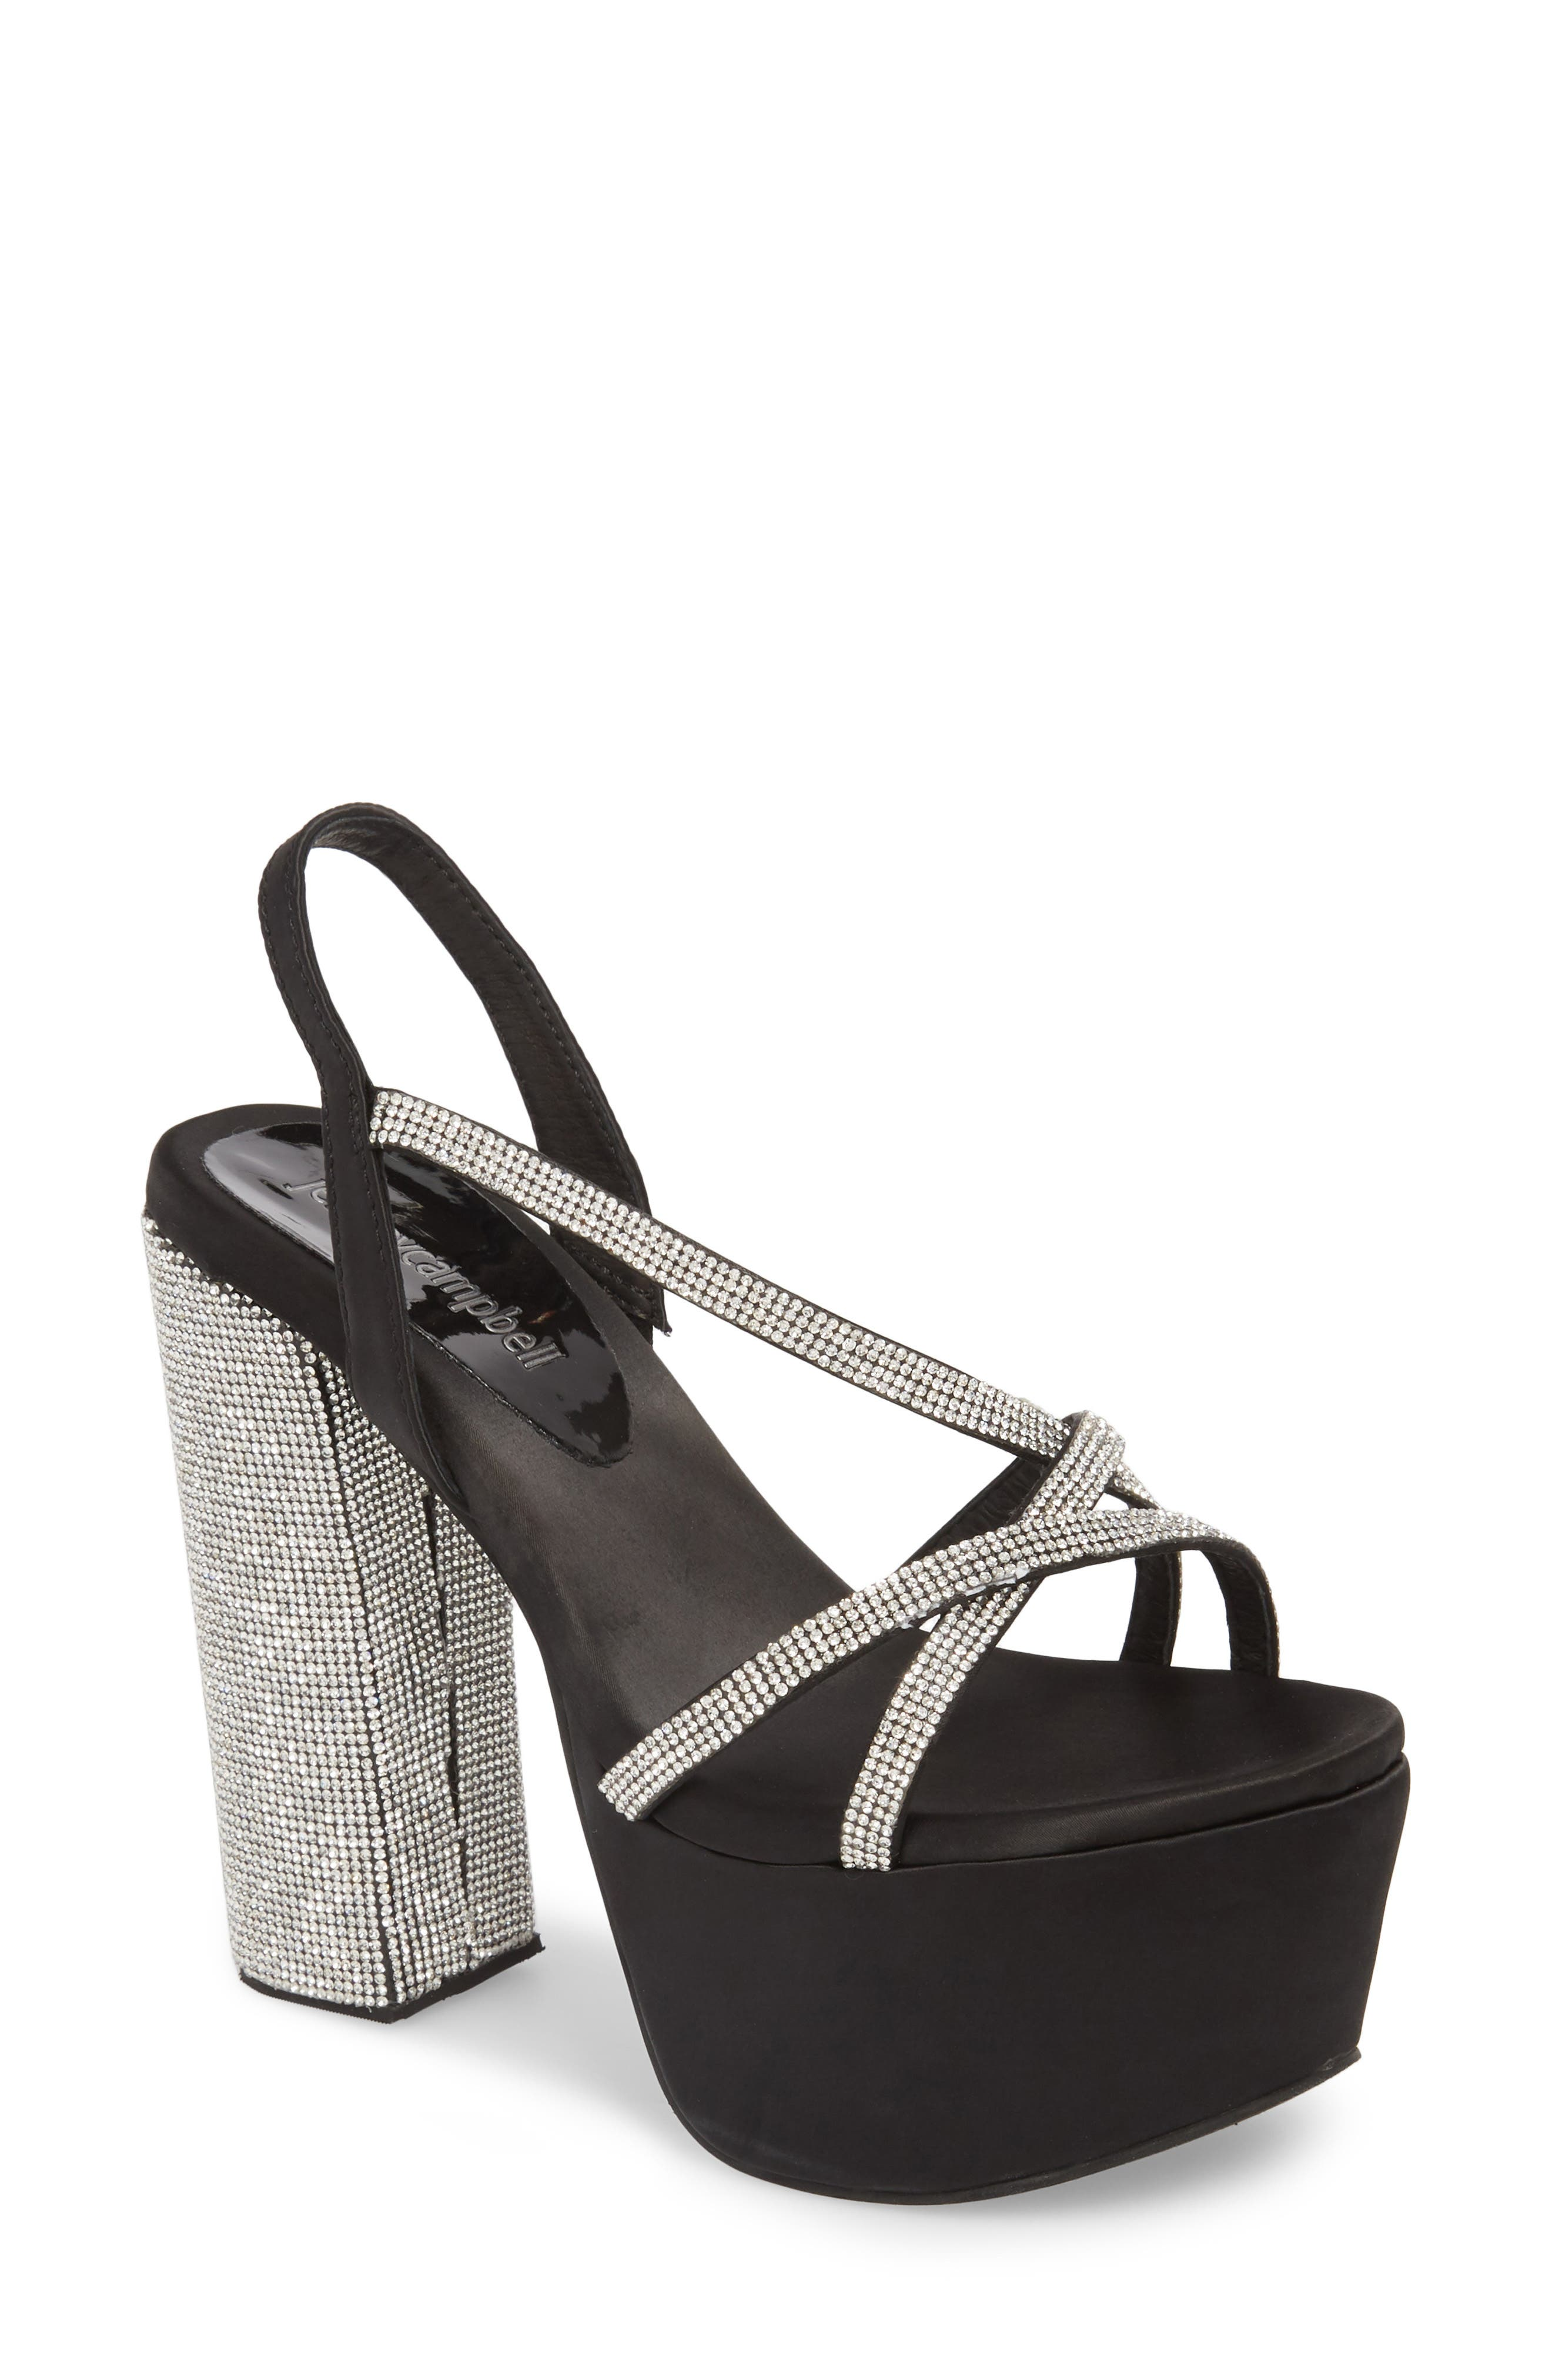 Upset Embellished Platform Sandal,                             Main thumbnail 1, color,                             BLACK SATIN/ SILVER